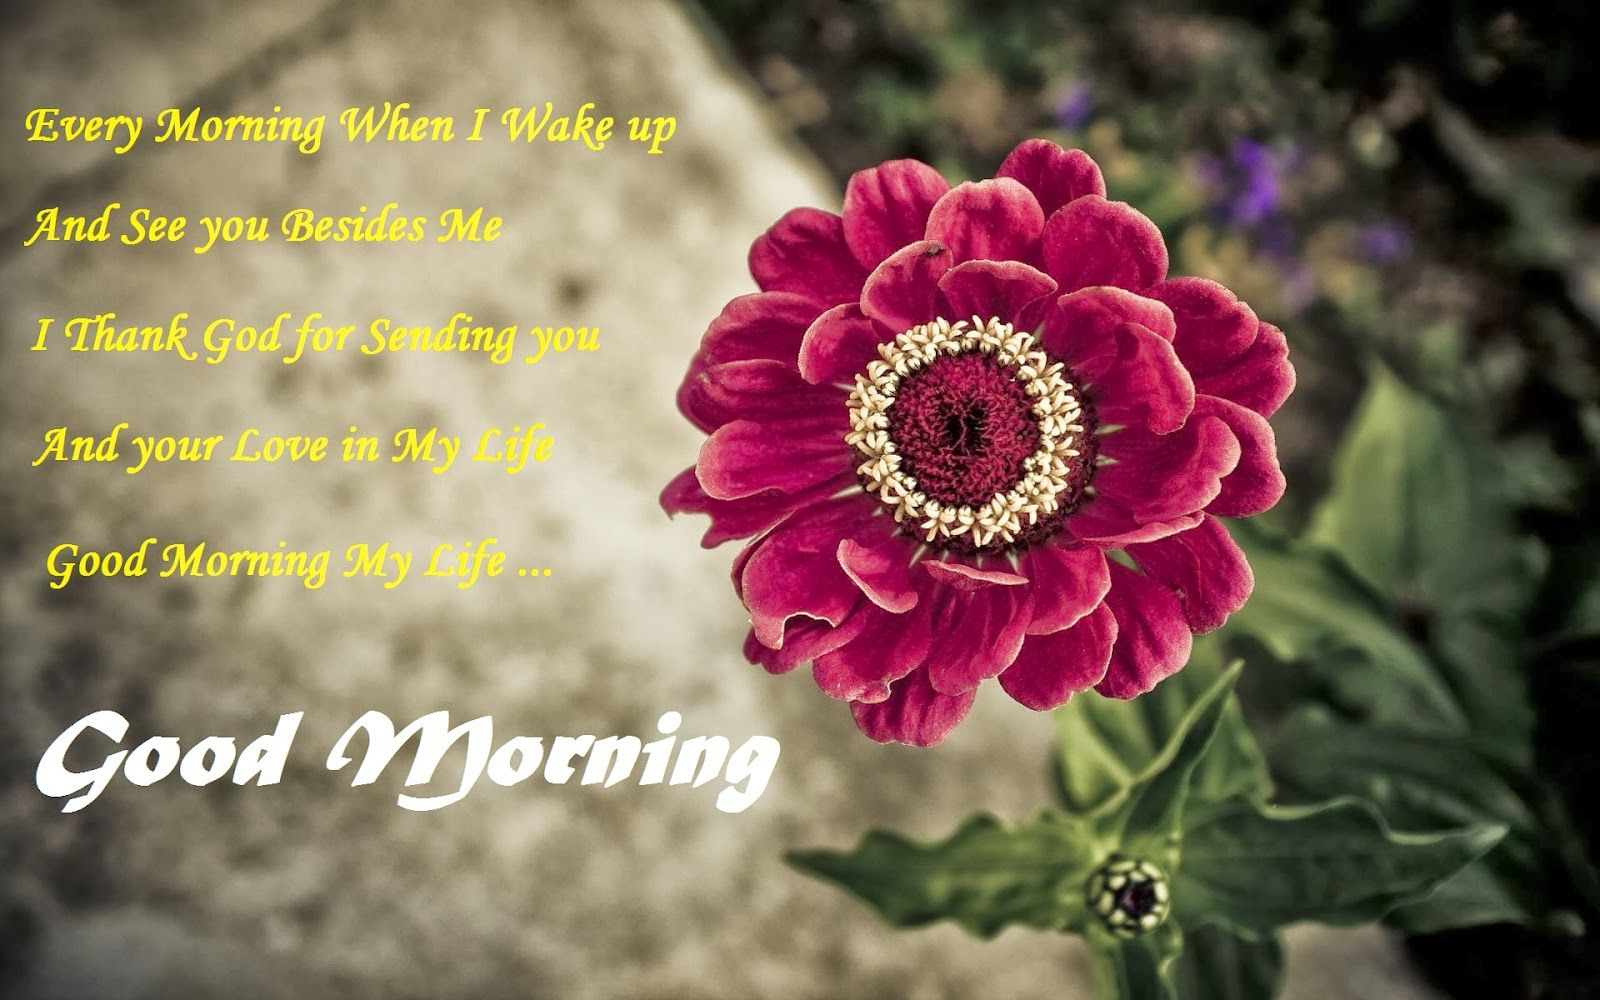 Good Morning Images With Flowers Gud Morning Flowers Good Morning Wallpaper Red Flower Wallpaper Flower Wallpaper